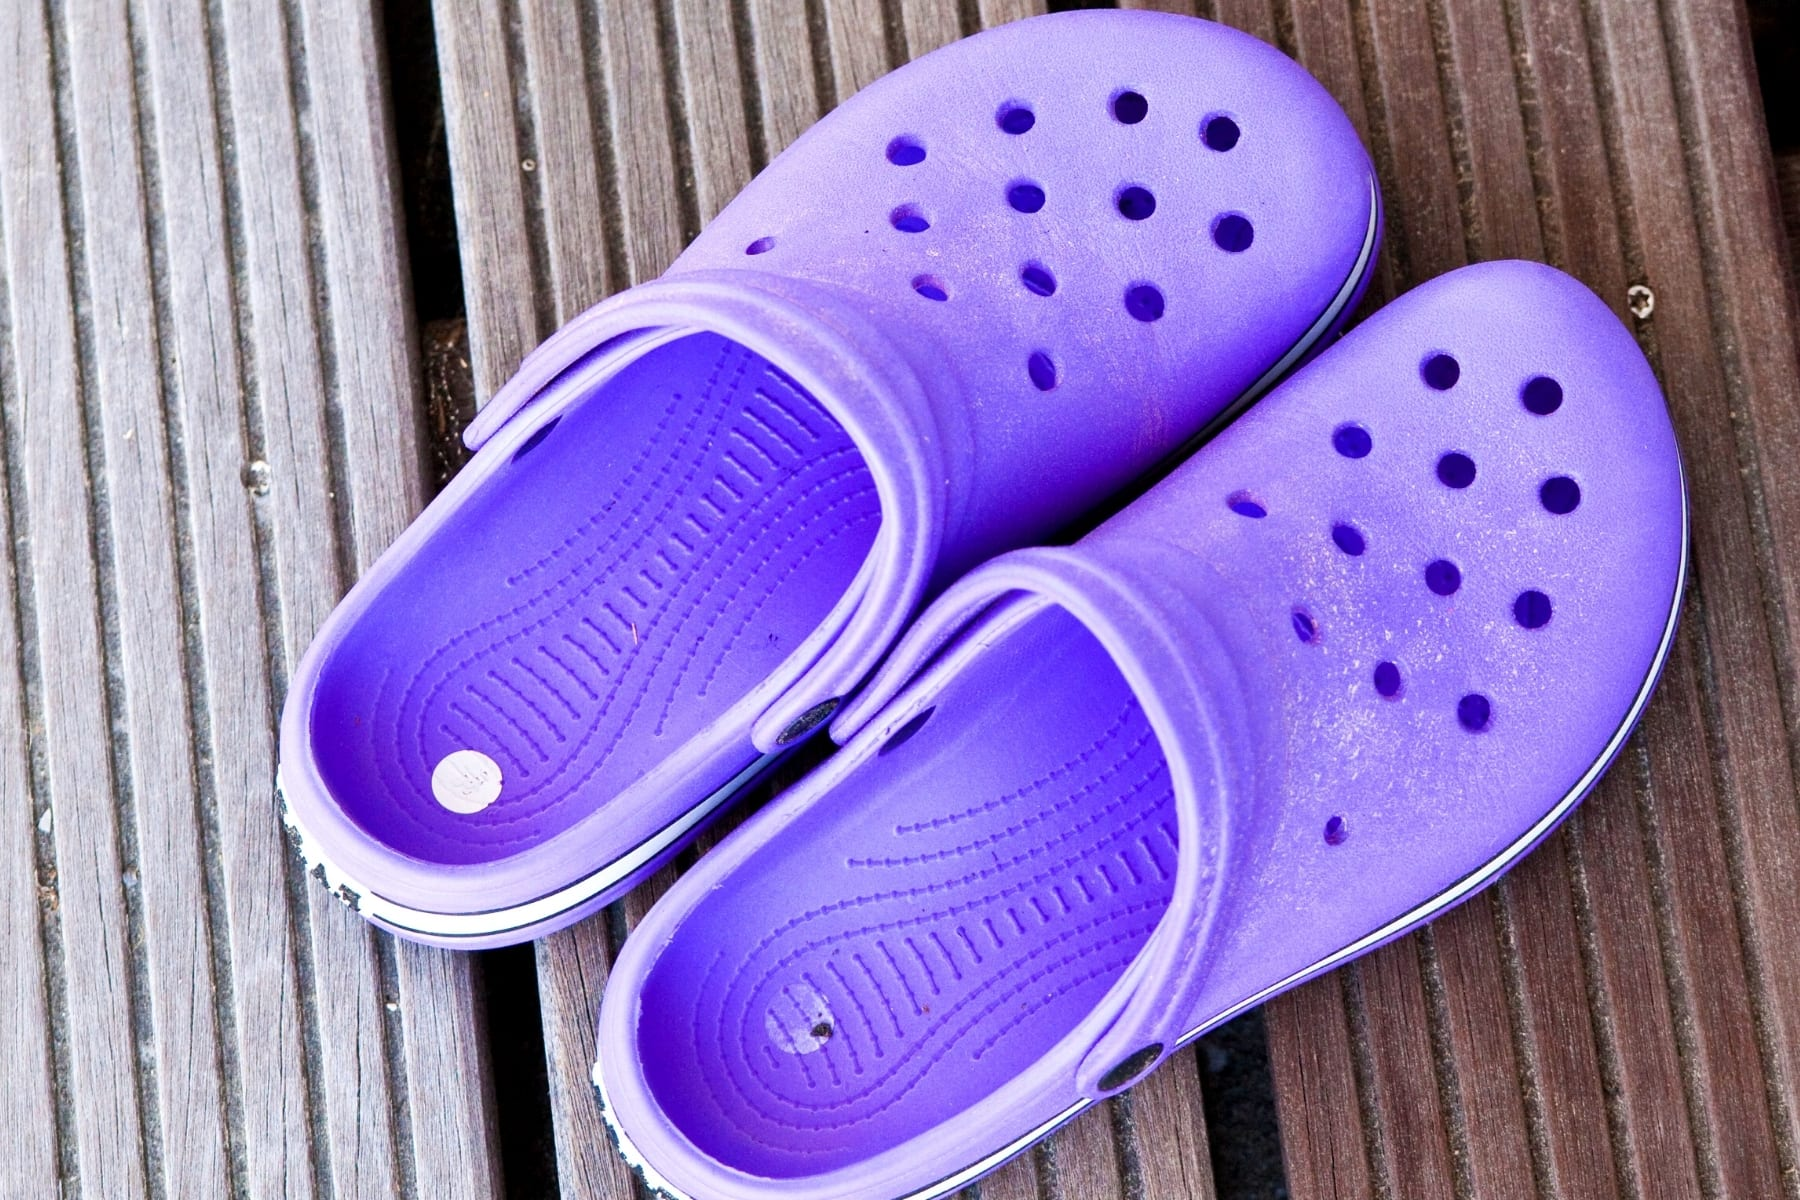 A pair of purple crocs shoes.